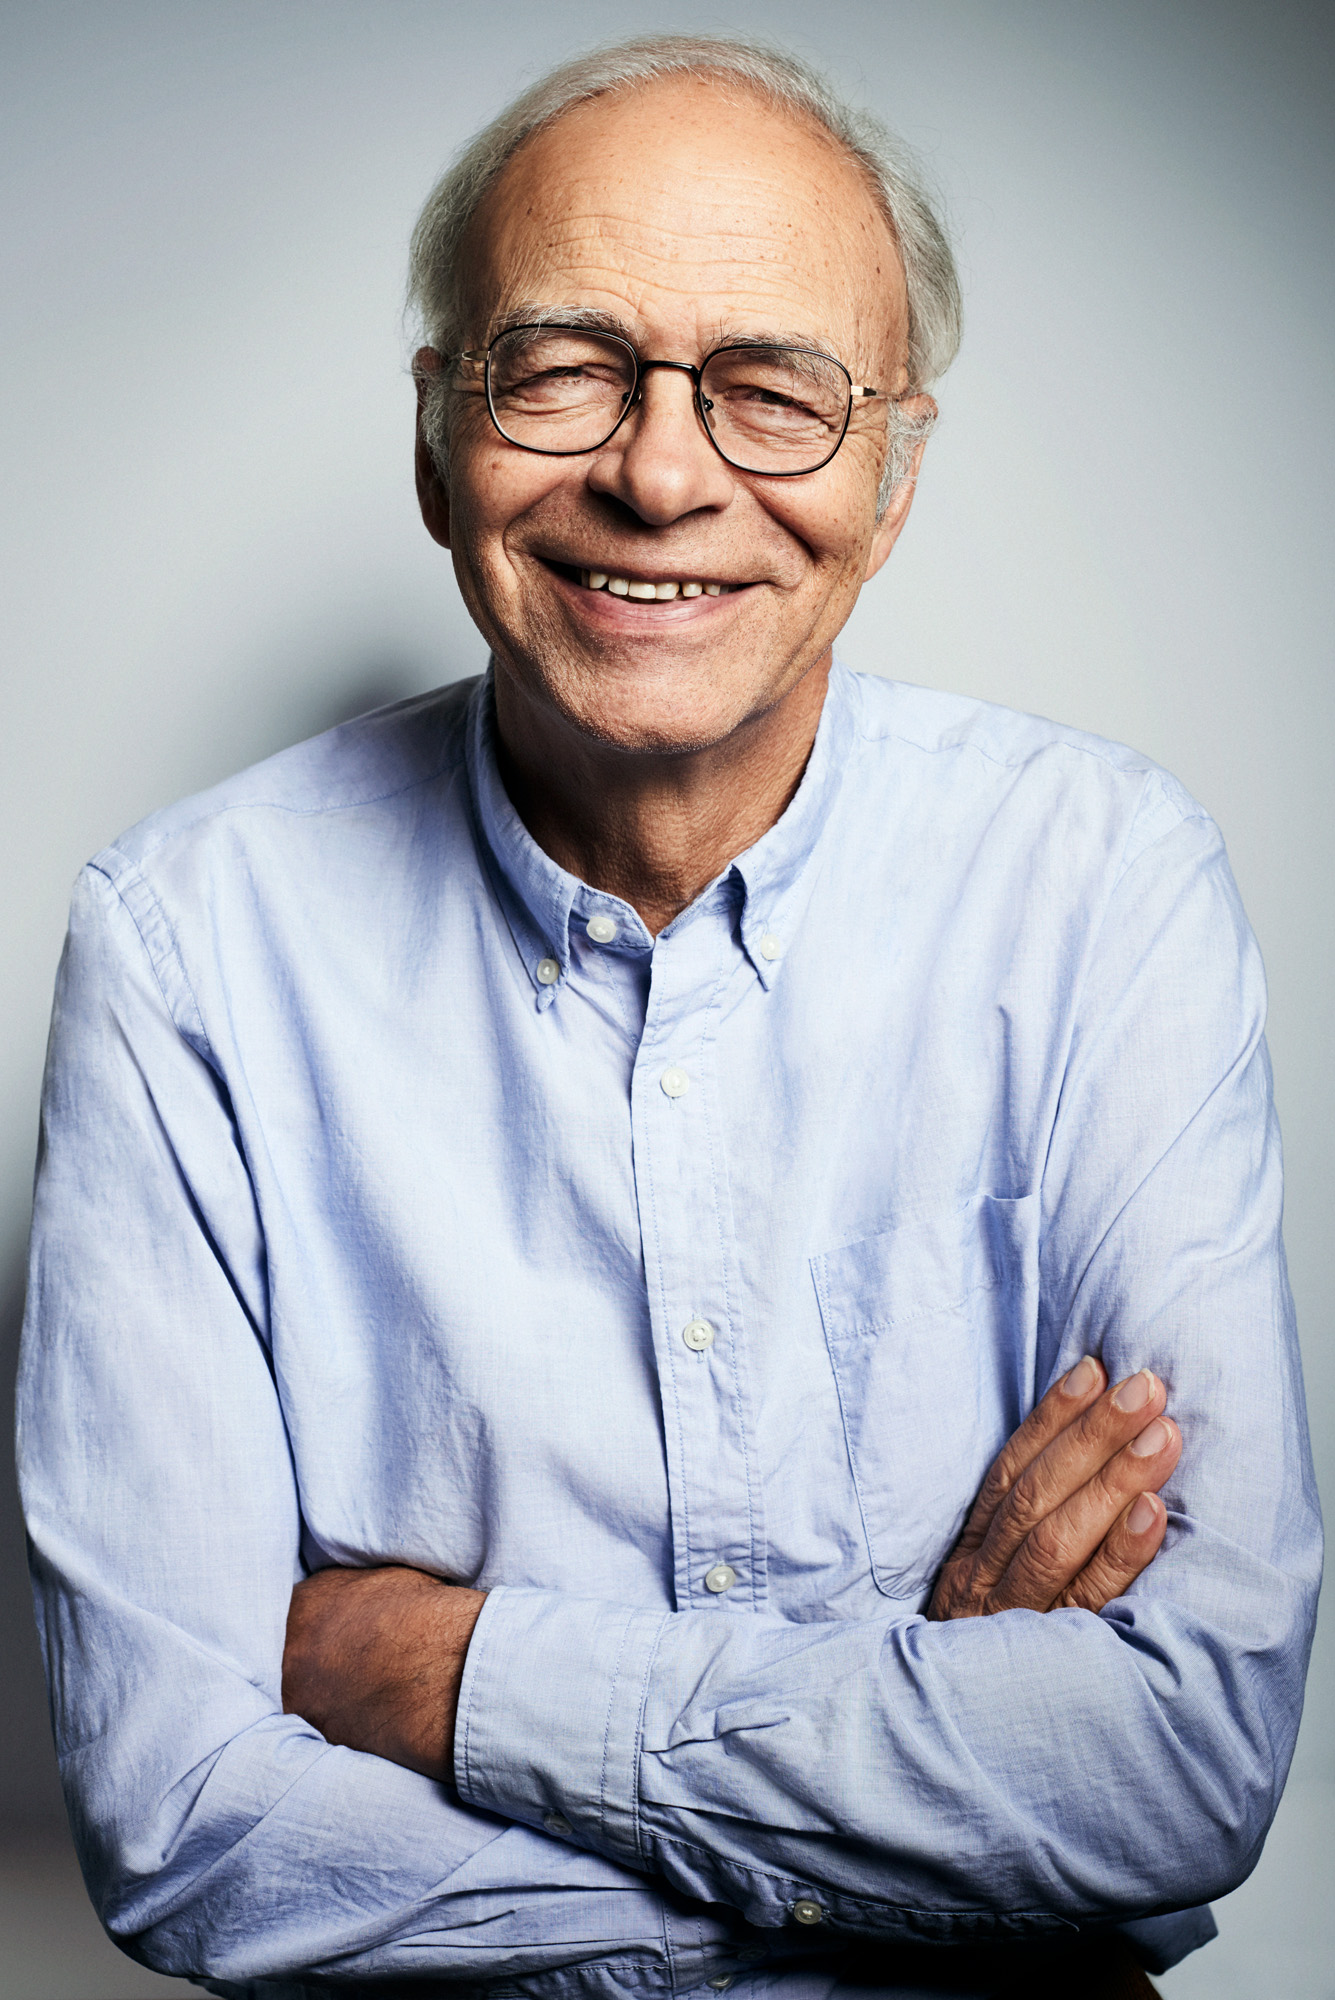 Peter Singer From Tedtalks Words Of Wisdom Intro To